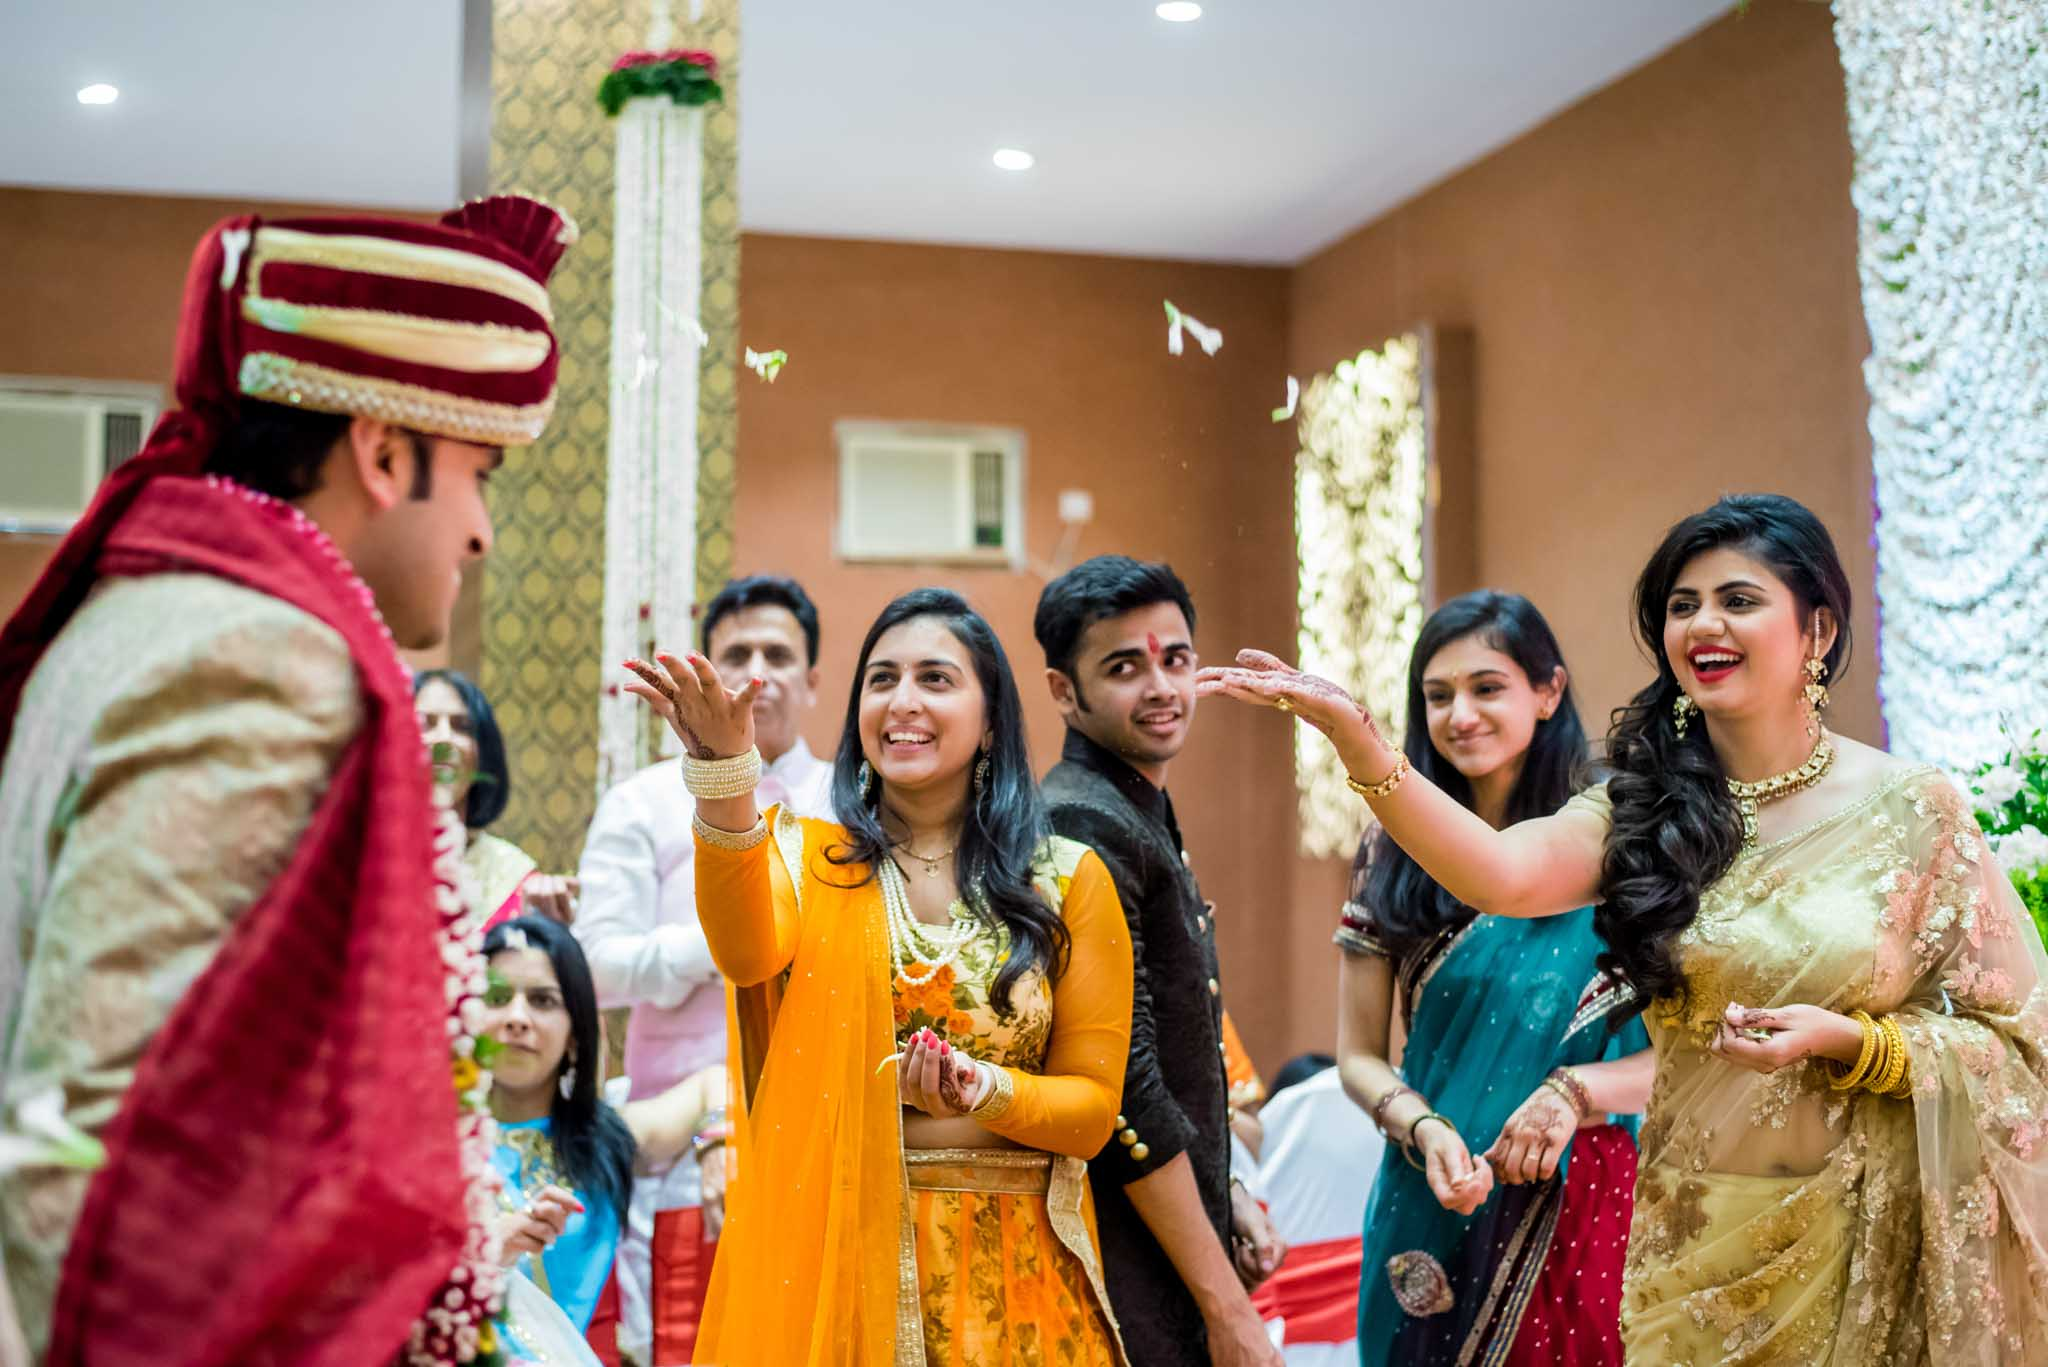 mumbai-candid-photography-wedding-whatknot-kamal-amrohi-studios-45